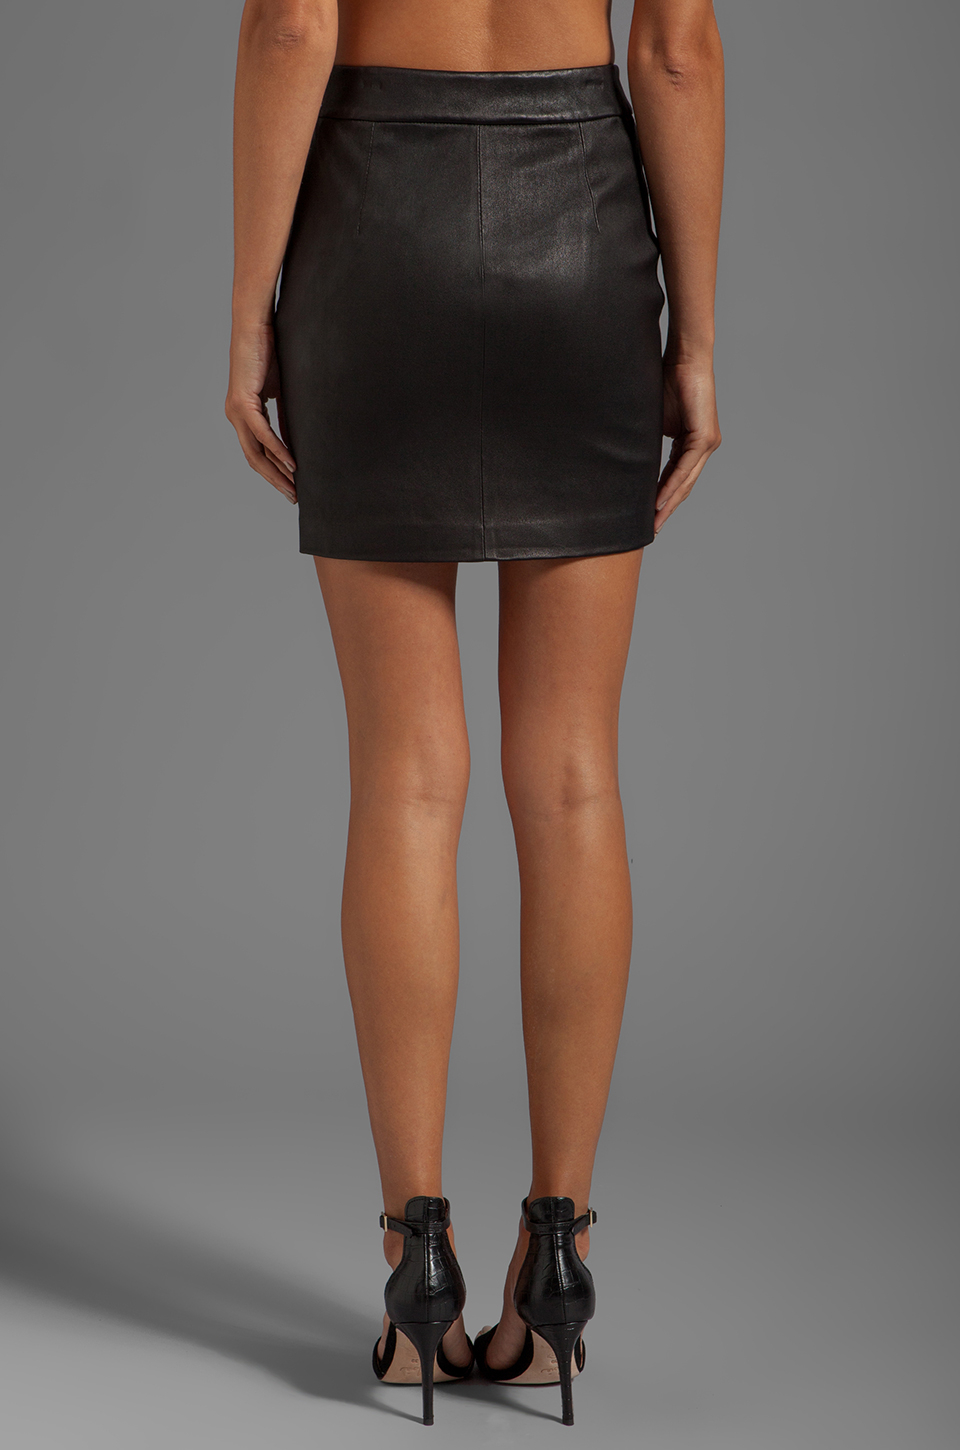 T by alexander wang Stretch Leather High Waisted Skirt in Black | Lyst